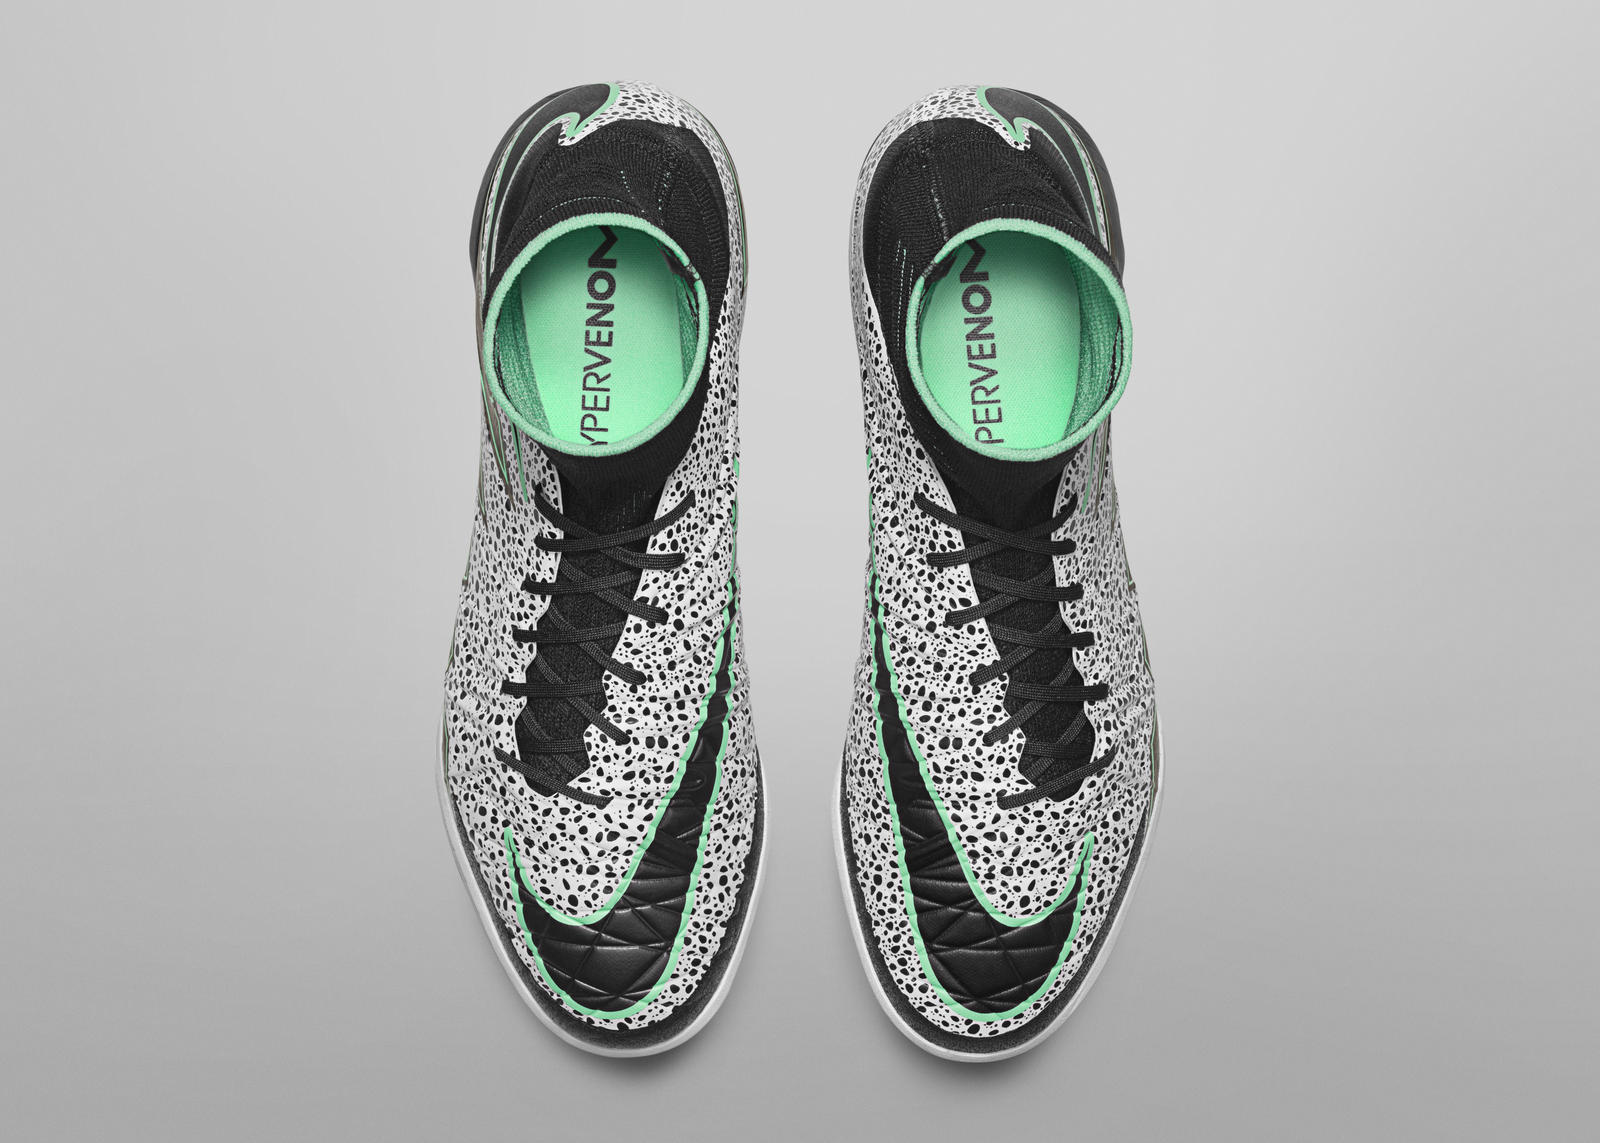 SP16_FB_NFX_STREET_HYPERVENOMX_PROXIMO_IC_747486_103_D_rectangle_1600.jpg?1449213785